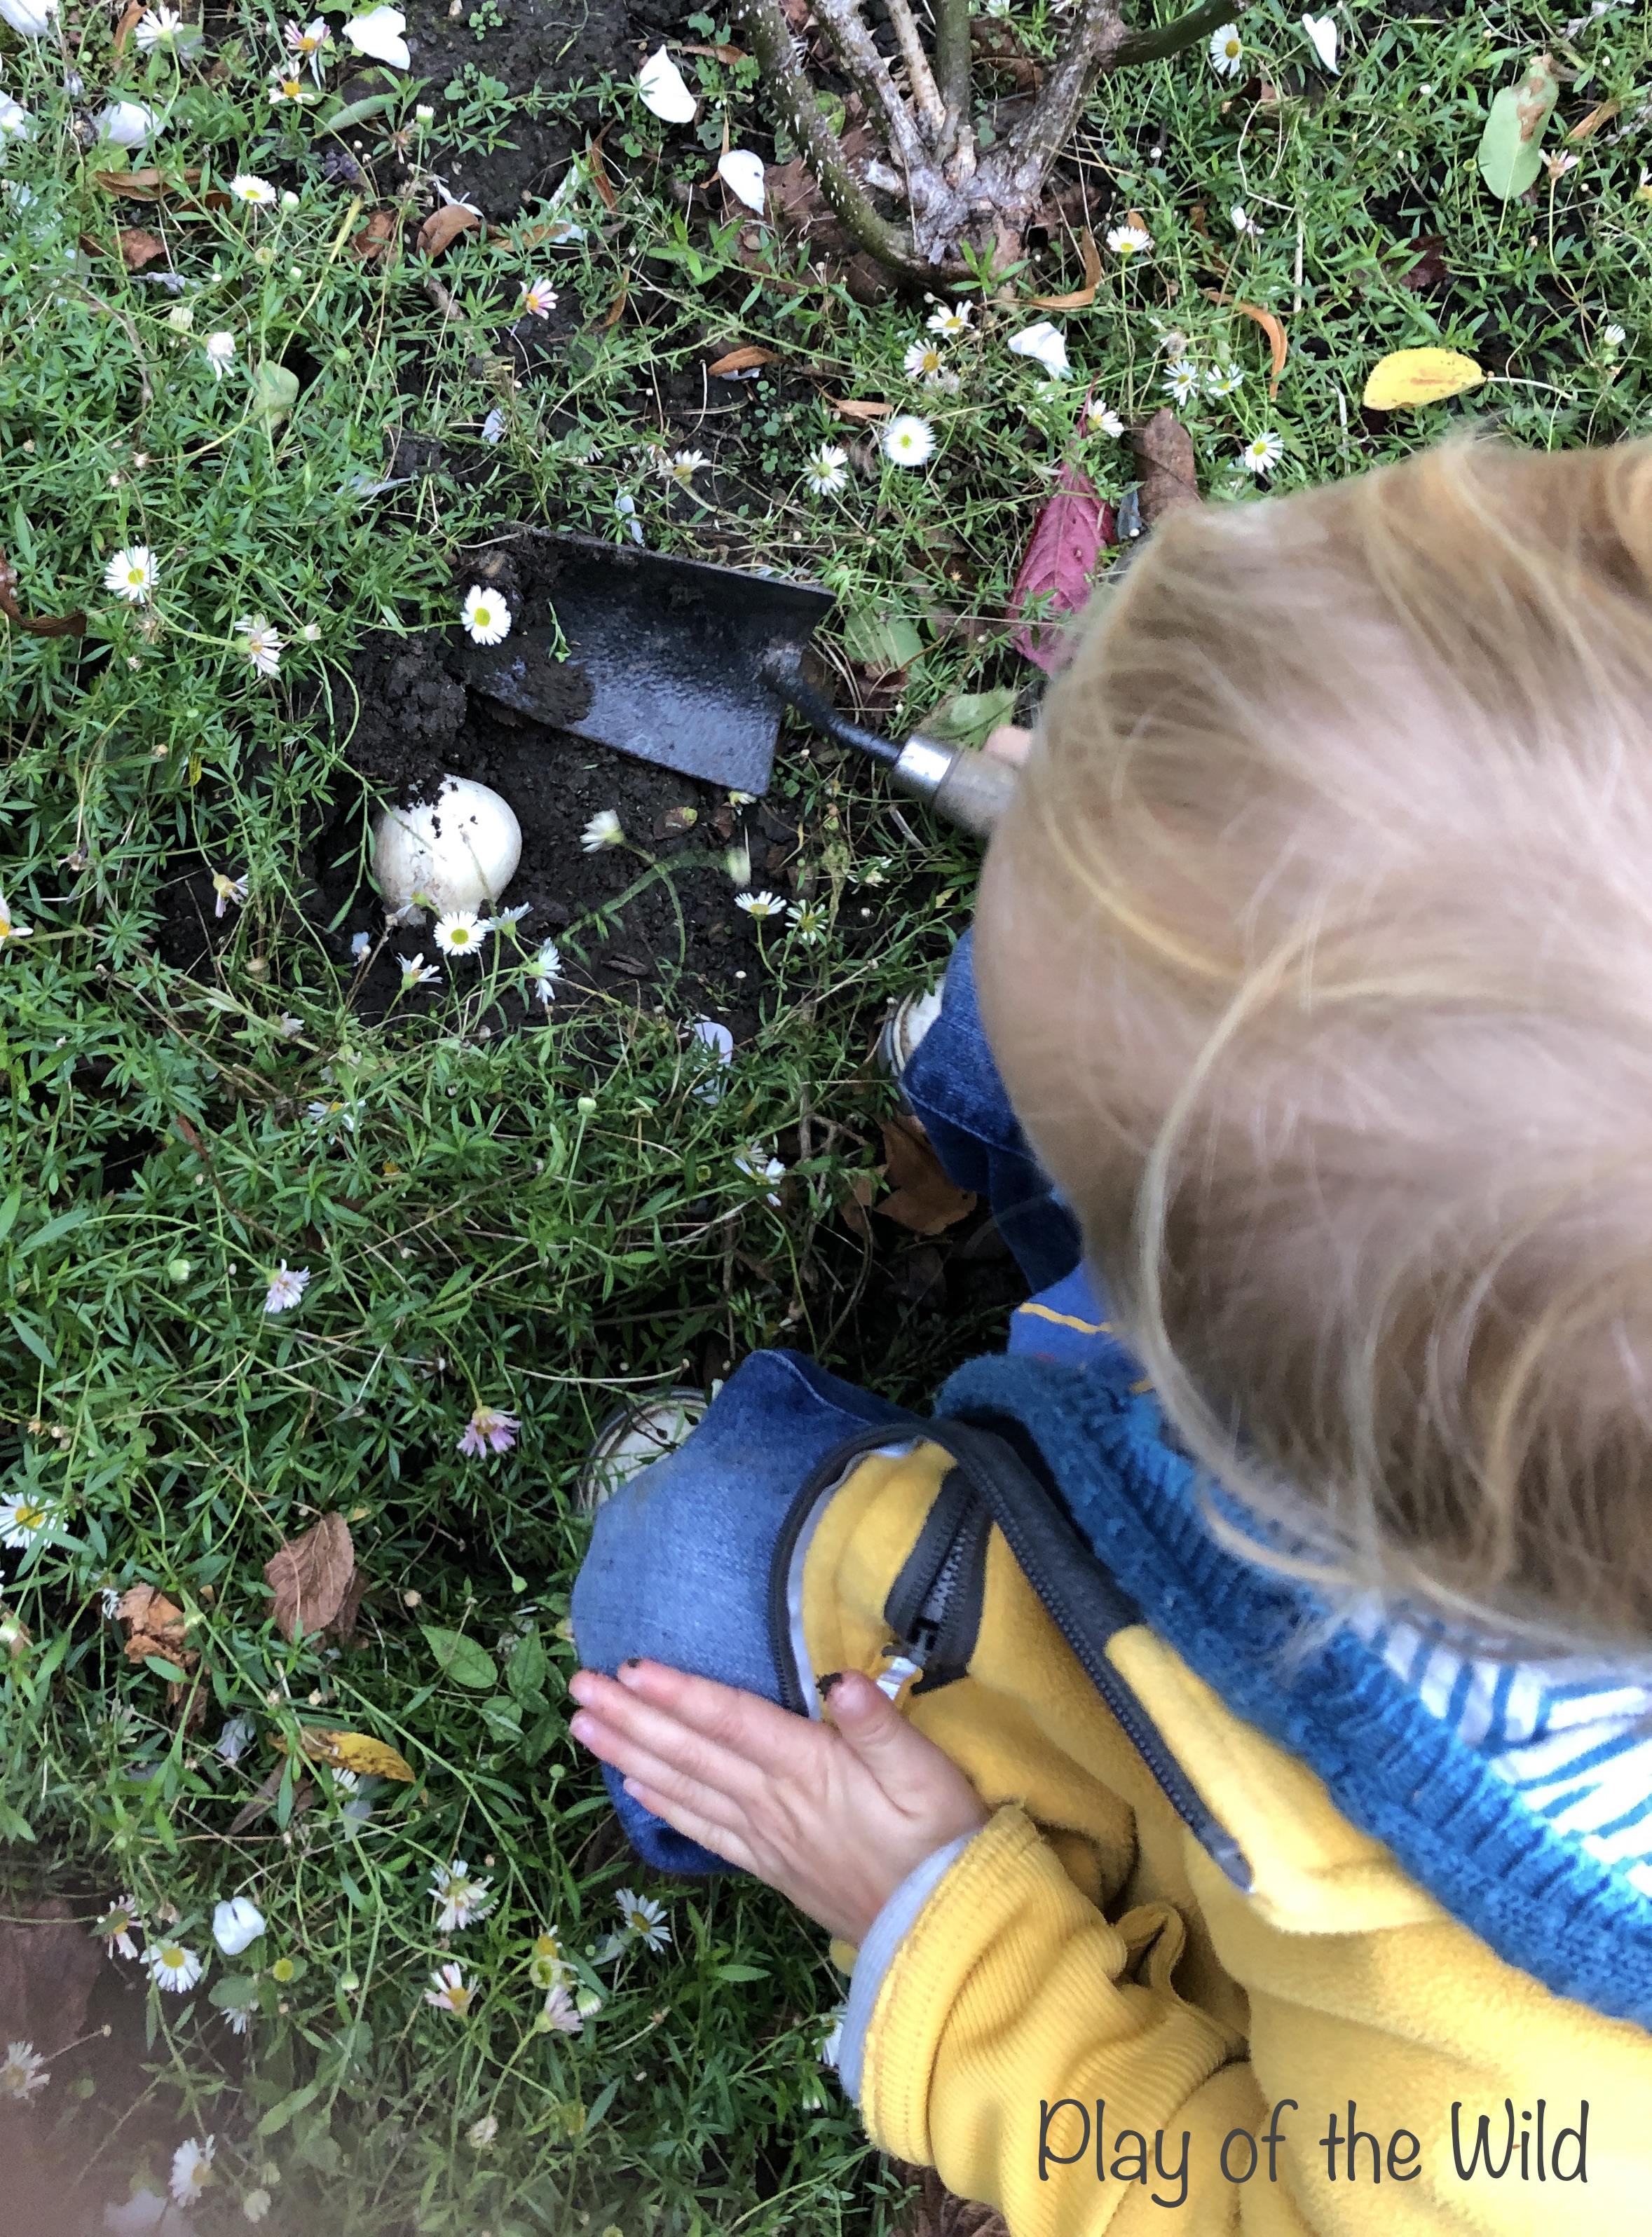 Outdoor Autumn and Winter Garden Activities for Children. Planting bulbs with kids.